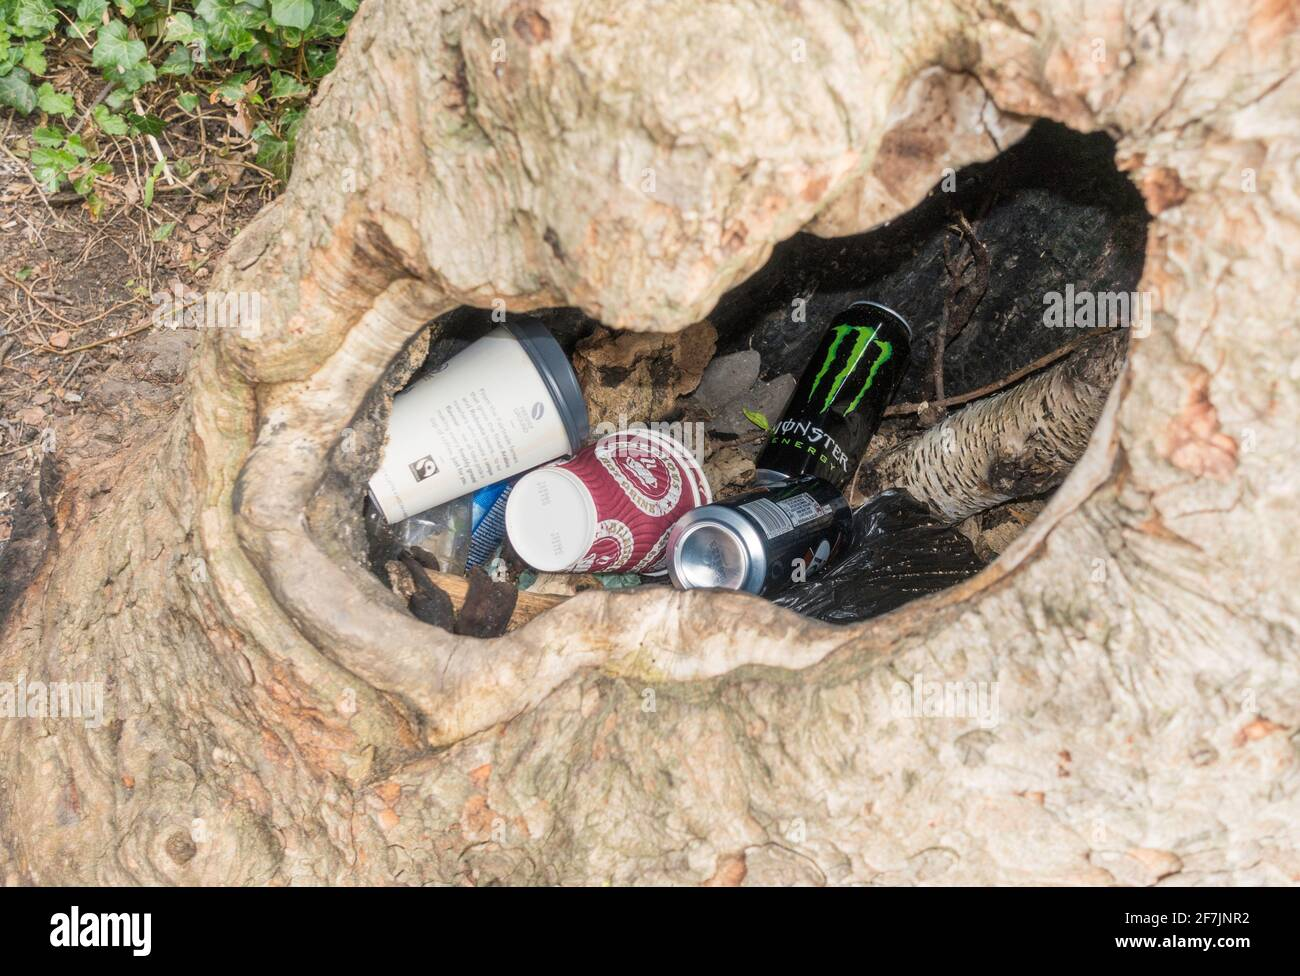 litter-deposited-within-a-hollow-tree-trunk-england-uk-2F7JNR2.jpg